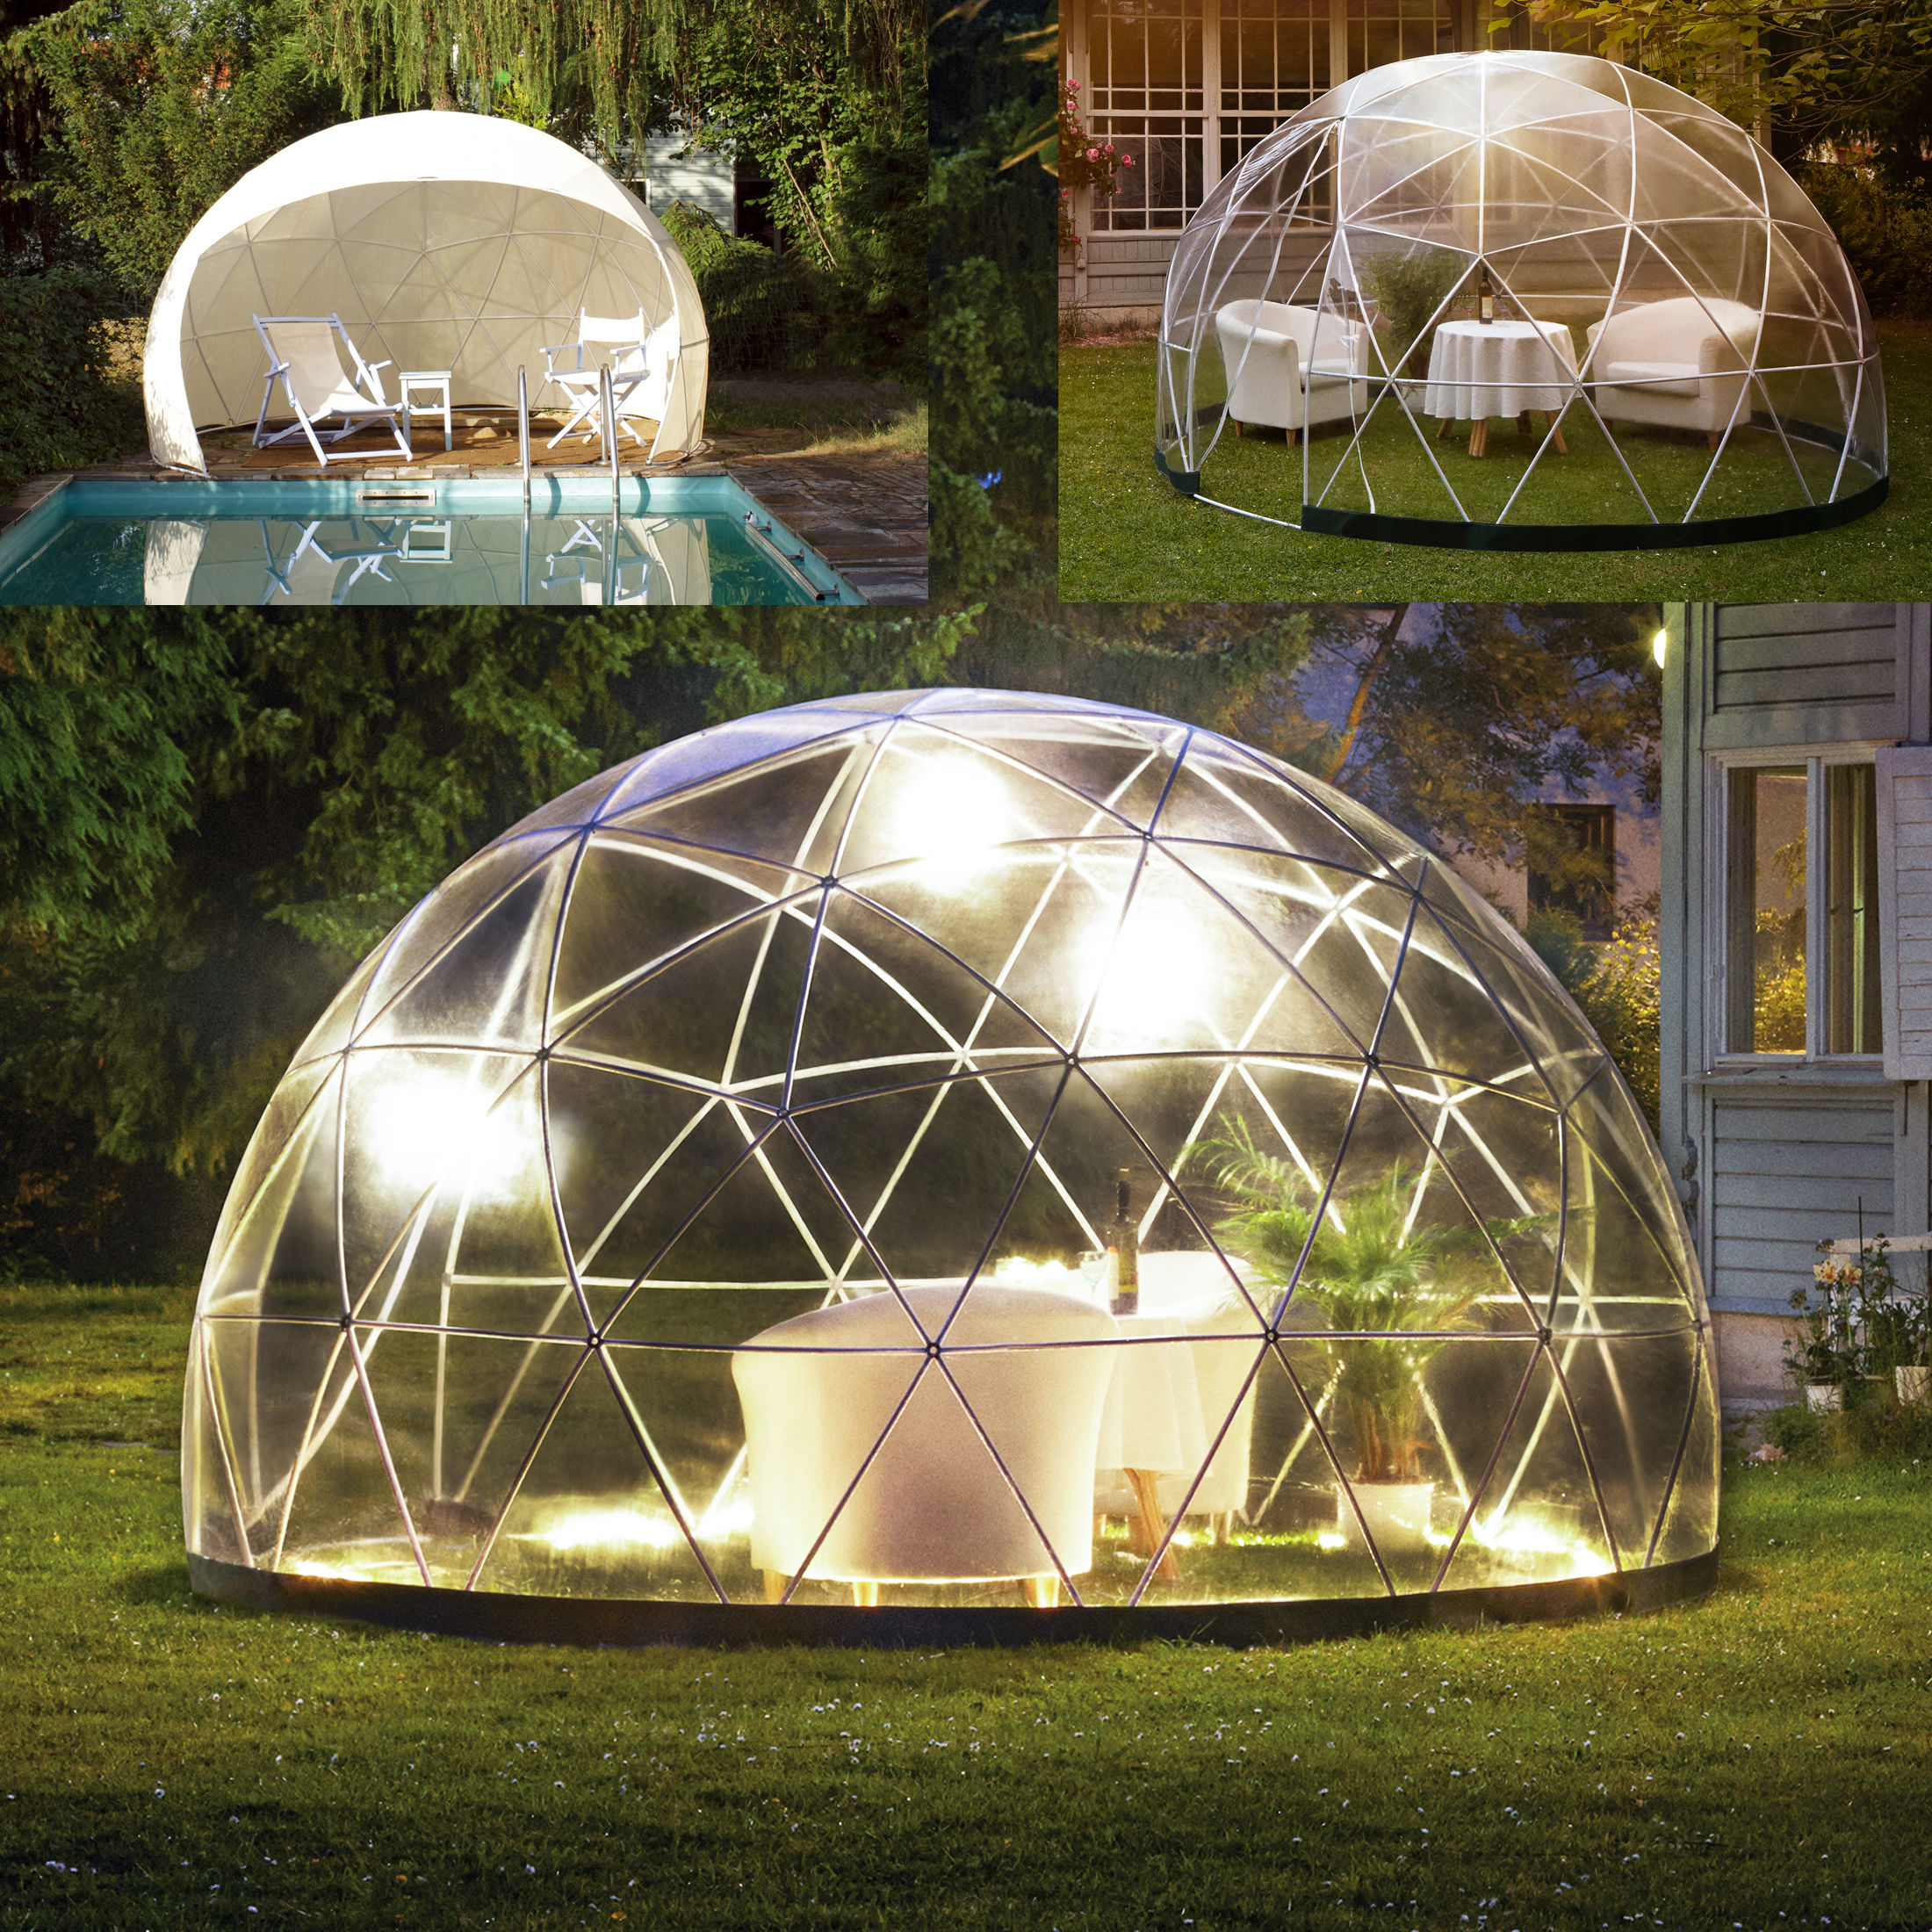 garten iglu pavillon gew chshaus garden igloo four seasons und passender son ebay. Black Bedroom Furniture Sets. Home Design Ideas